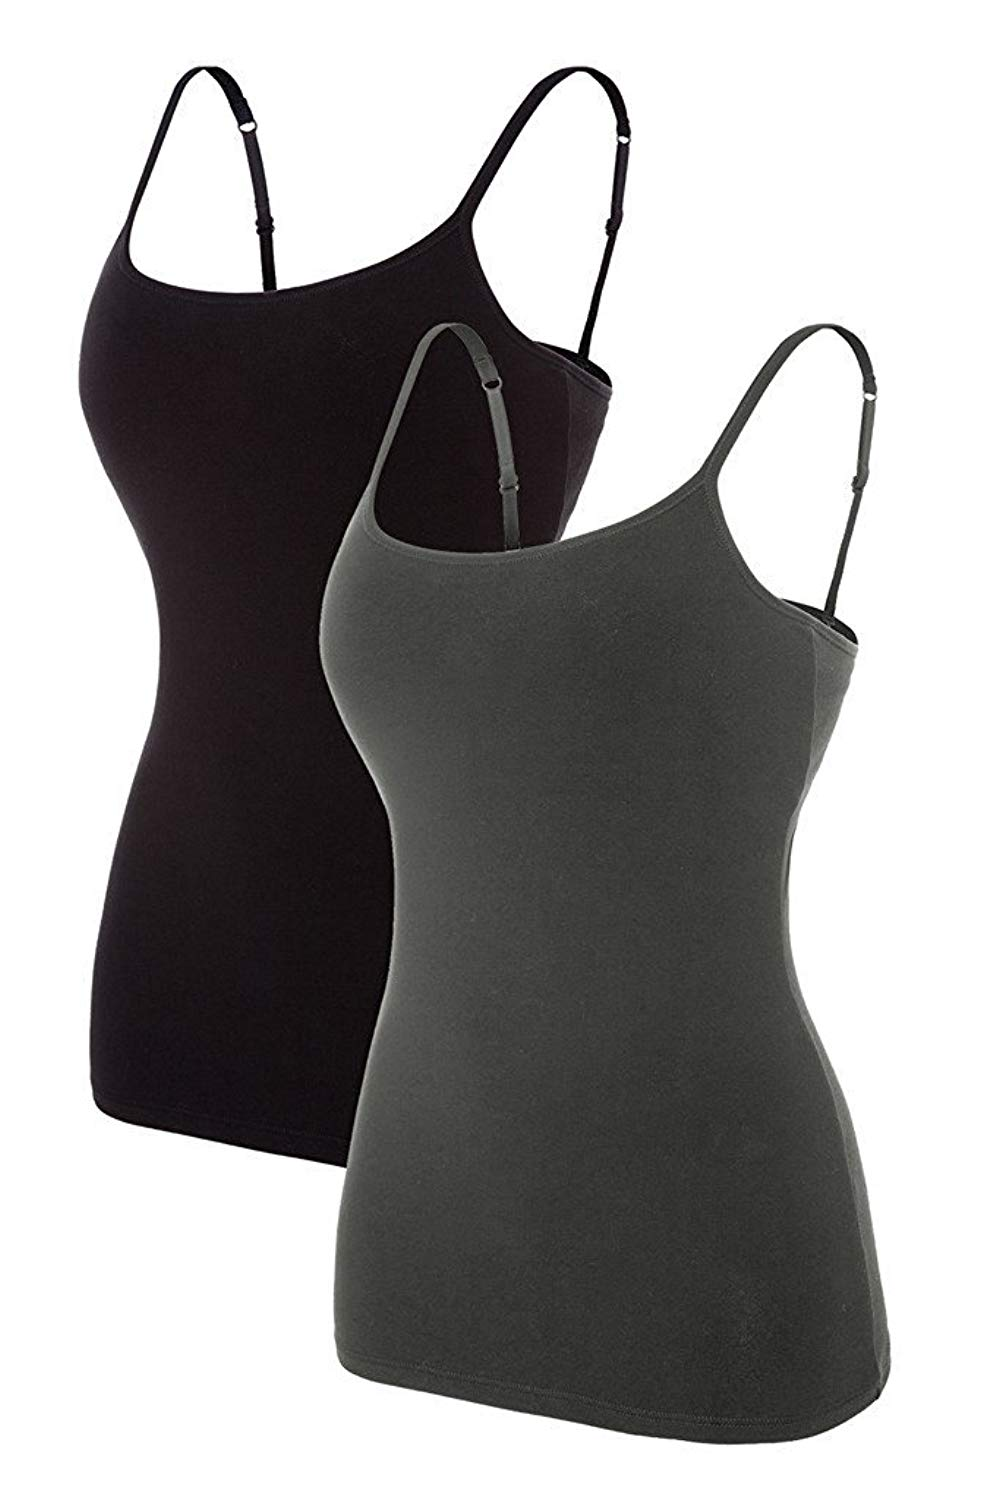 88e403ea70b39 Get Quotations · Maysoul Women Cotton Camisole Shelf Bra Tank Tops  Spaghetti Active Camis 2 Pack